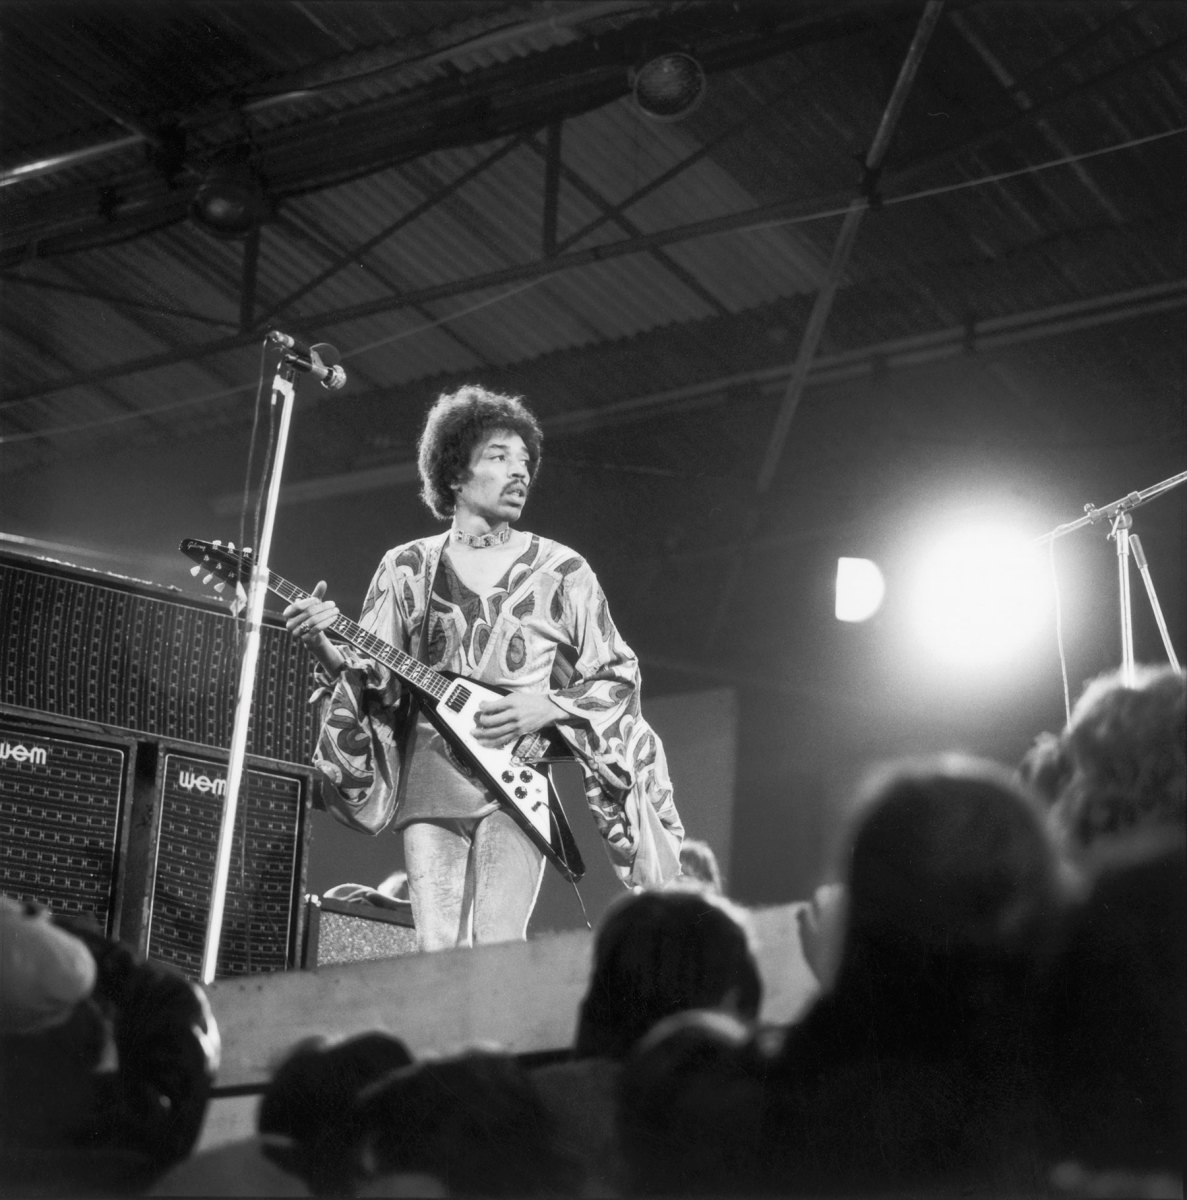 Hendrix playing the '69 Flying V and the limited-edition reproductions.